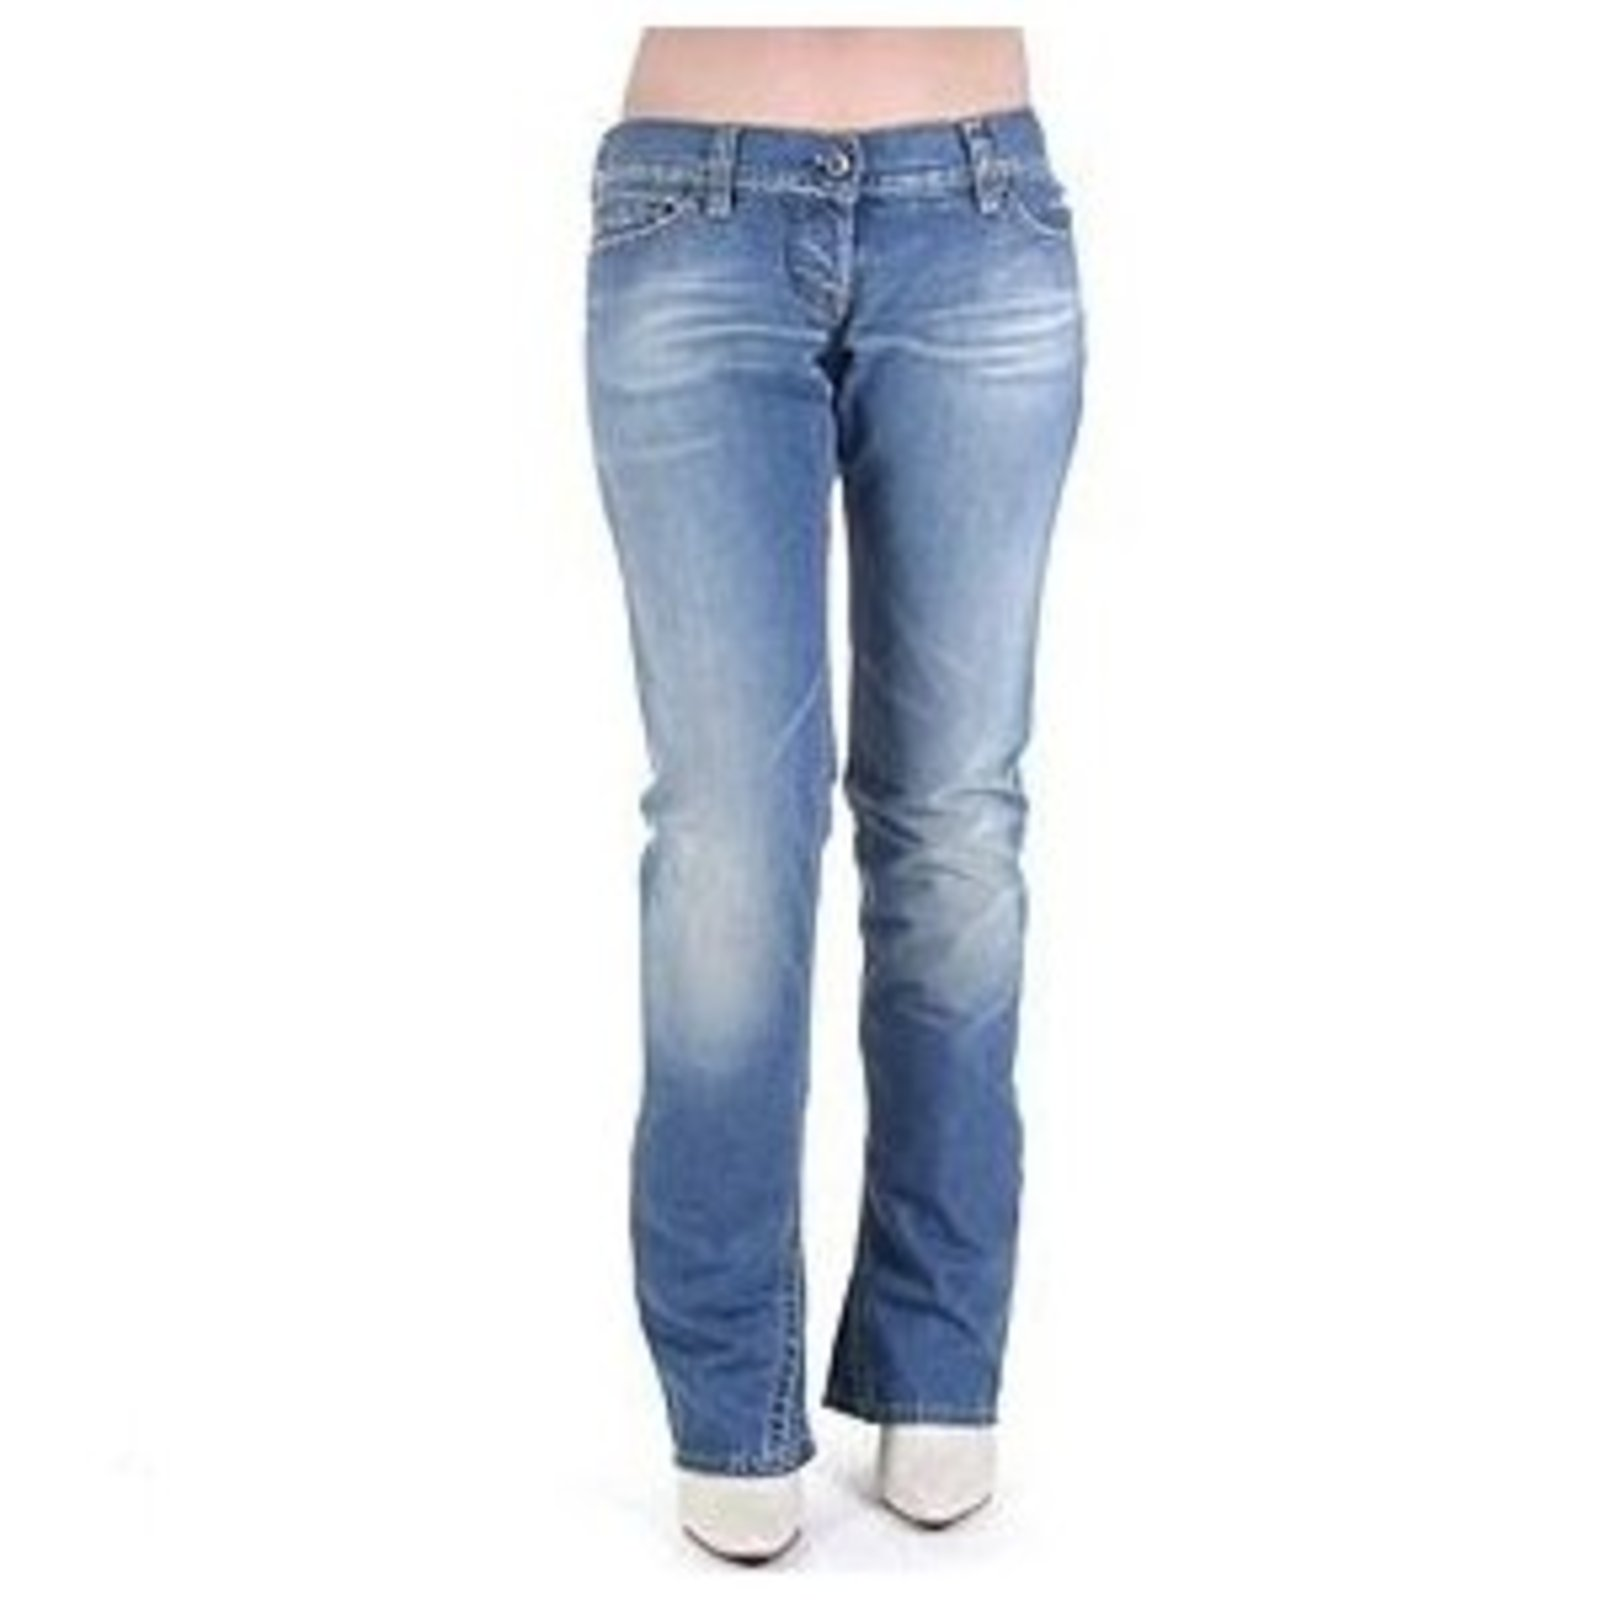 bb2c16fbe Evisu Womens Ultra Low Waist Superblasted Wash Bootcut Jeans with Zipped  Back Pockets EVIS2441